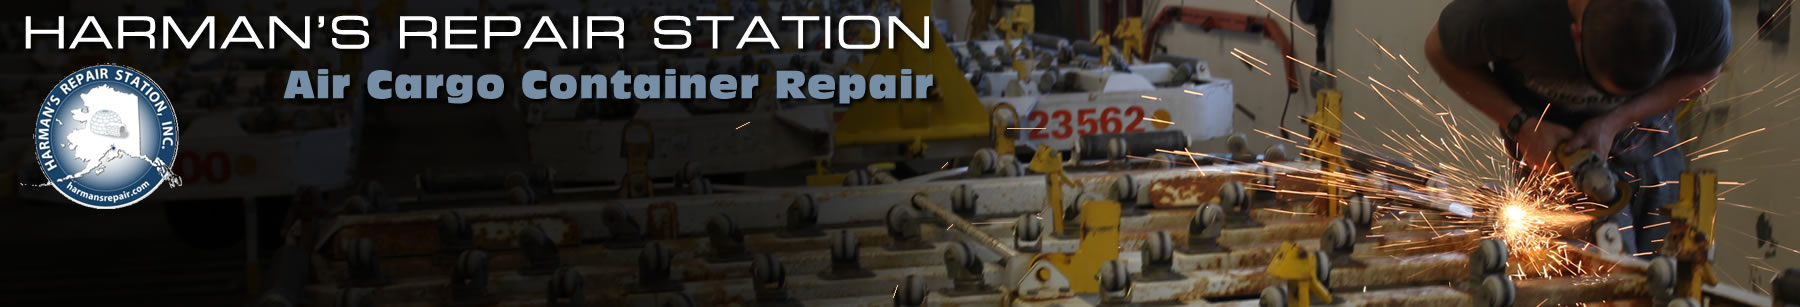 Harman's Repair Station